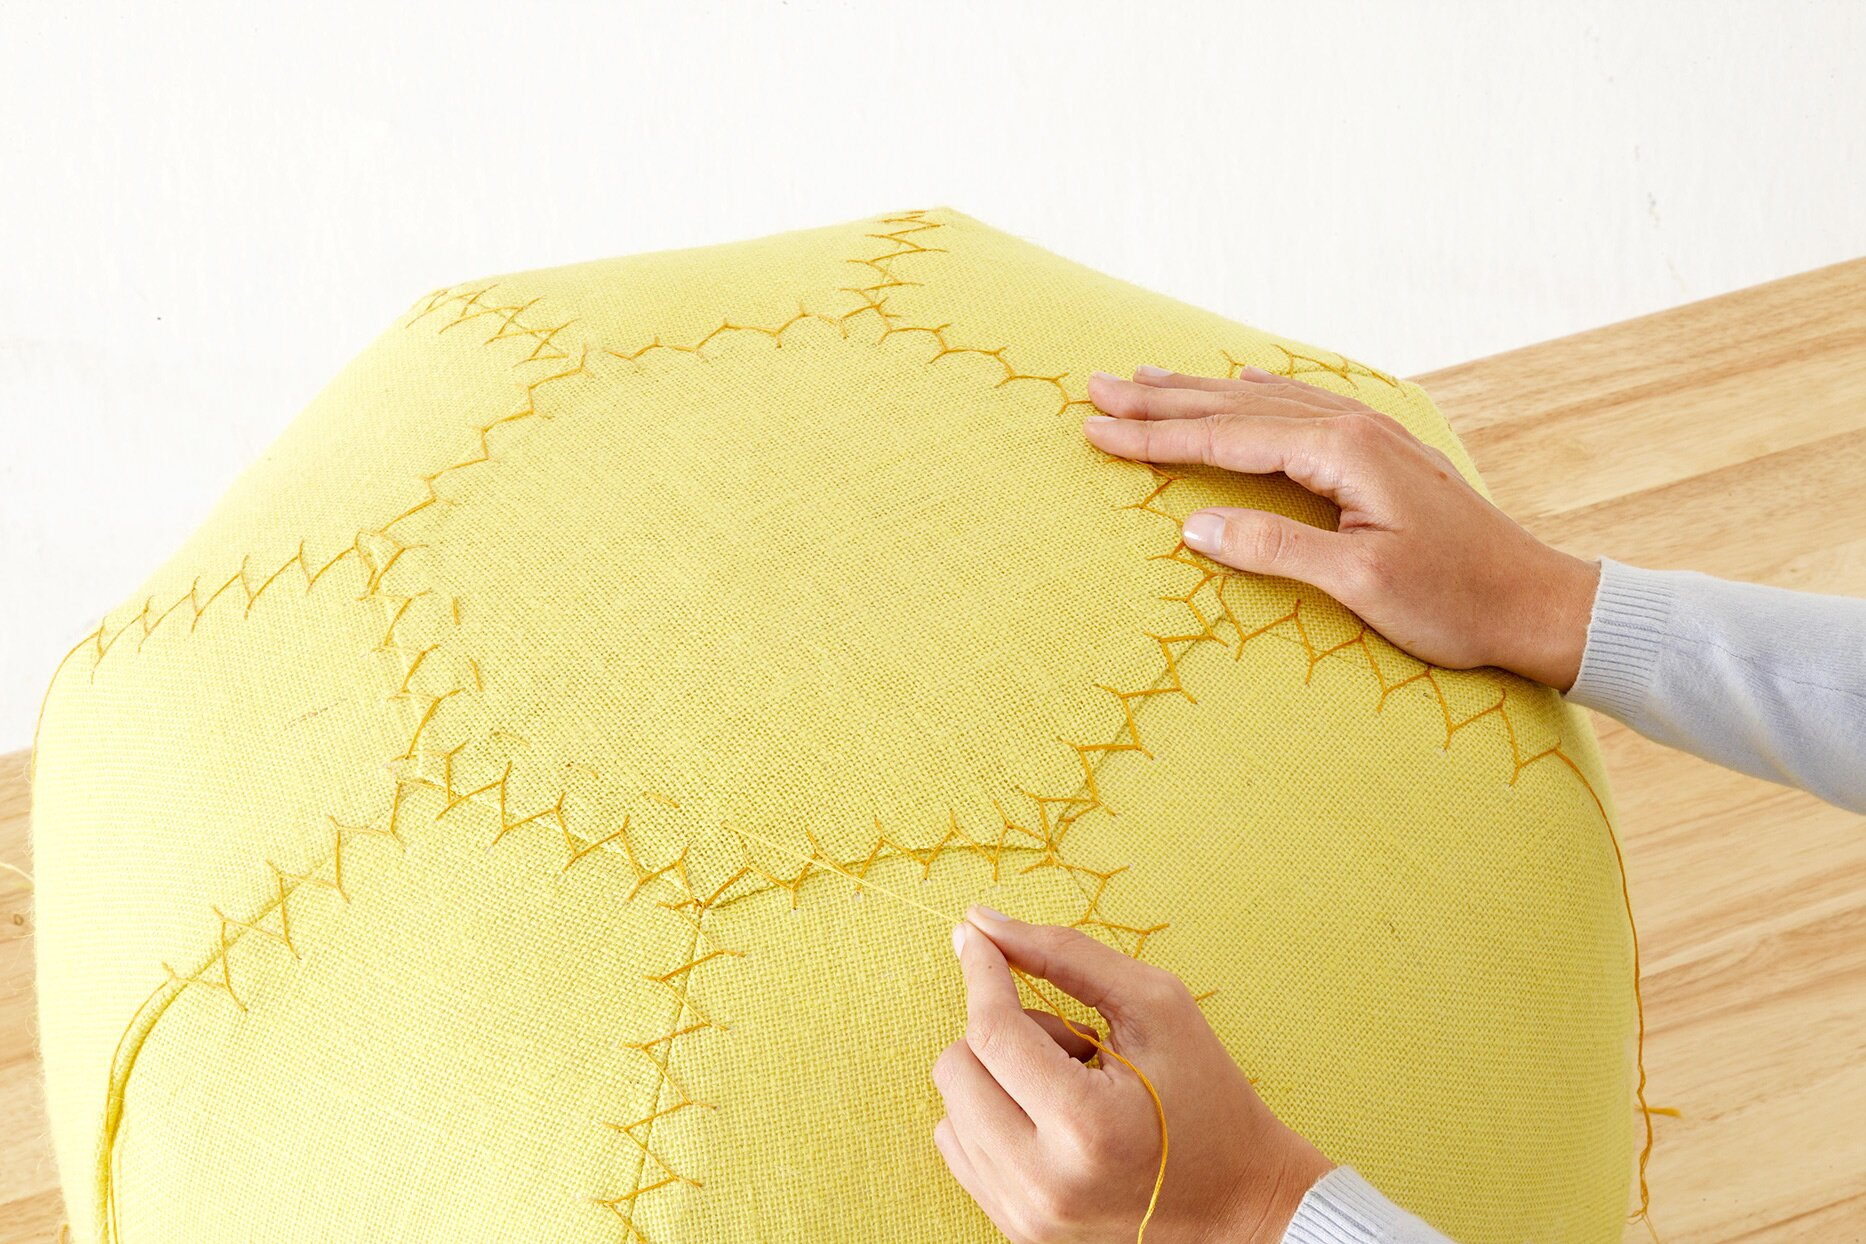 Person sewing octagon on pouf